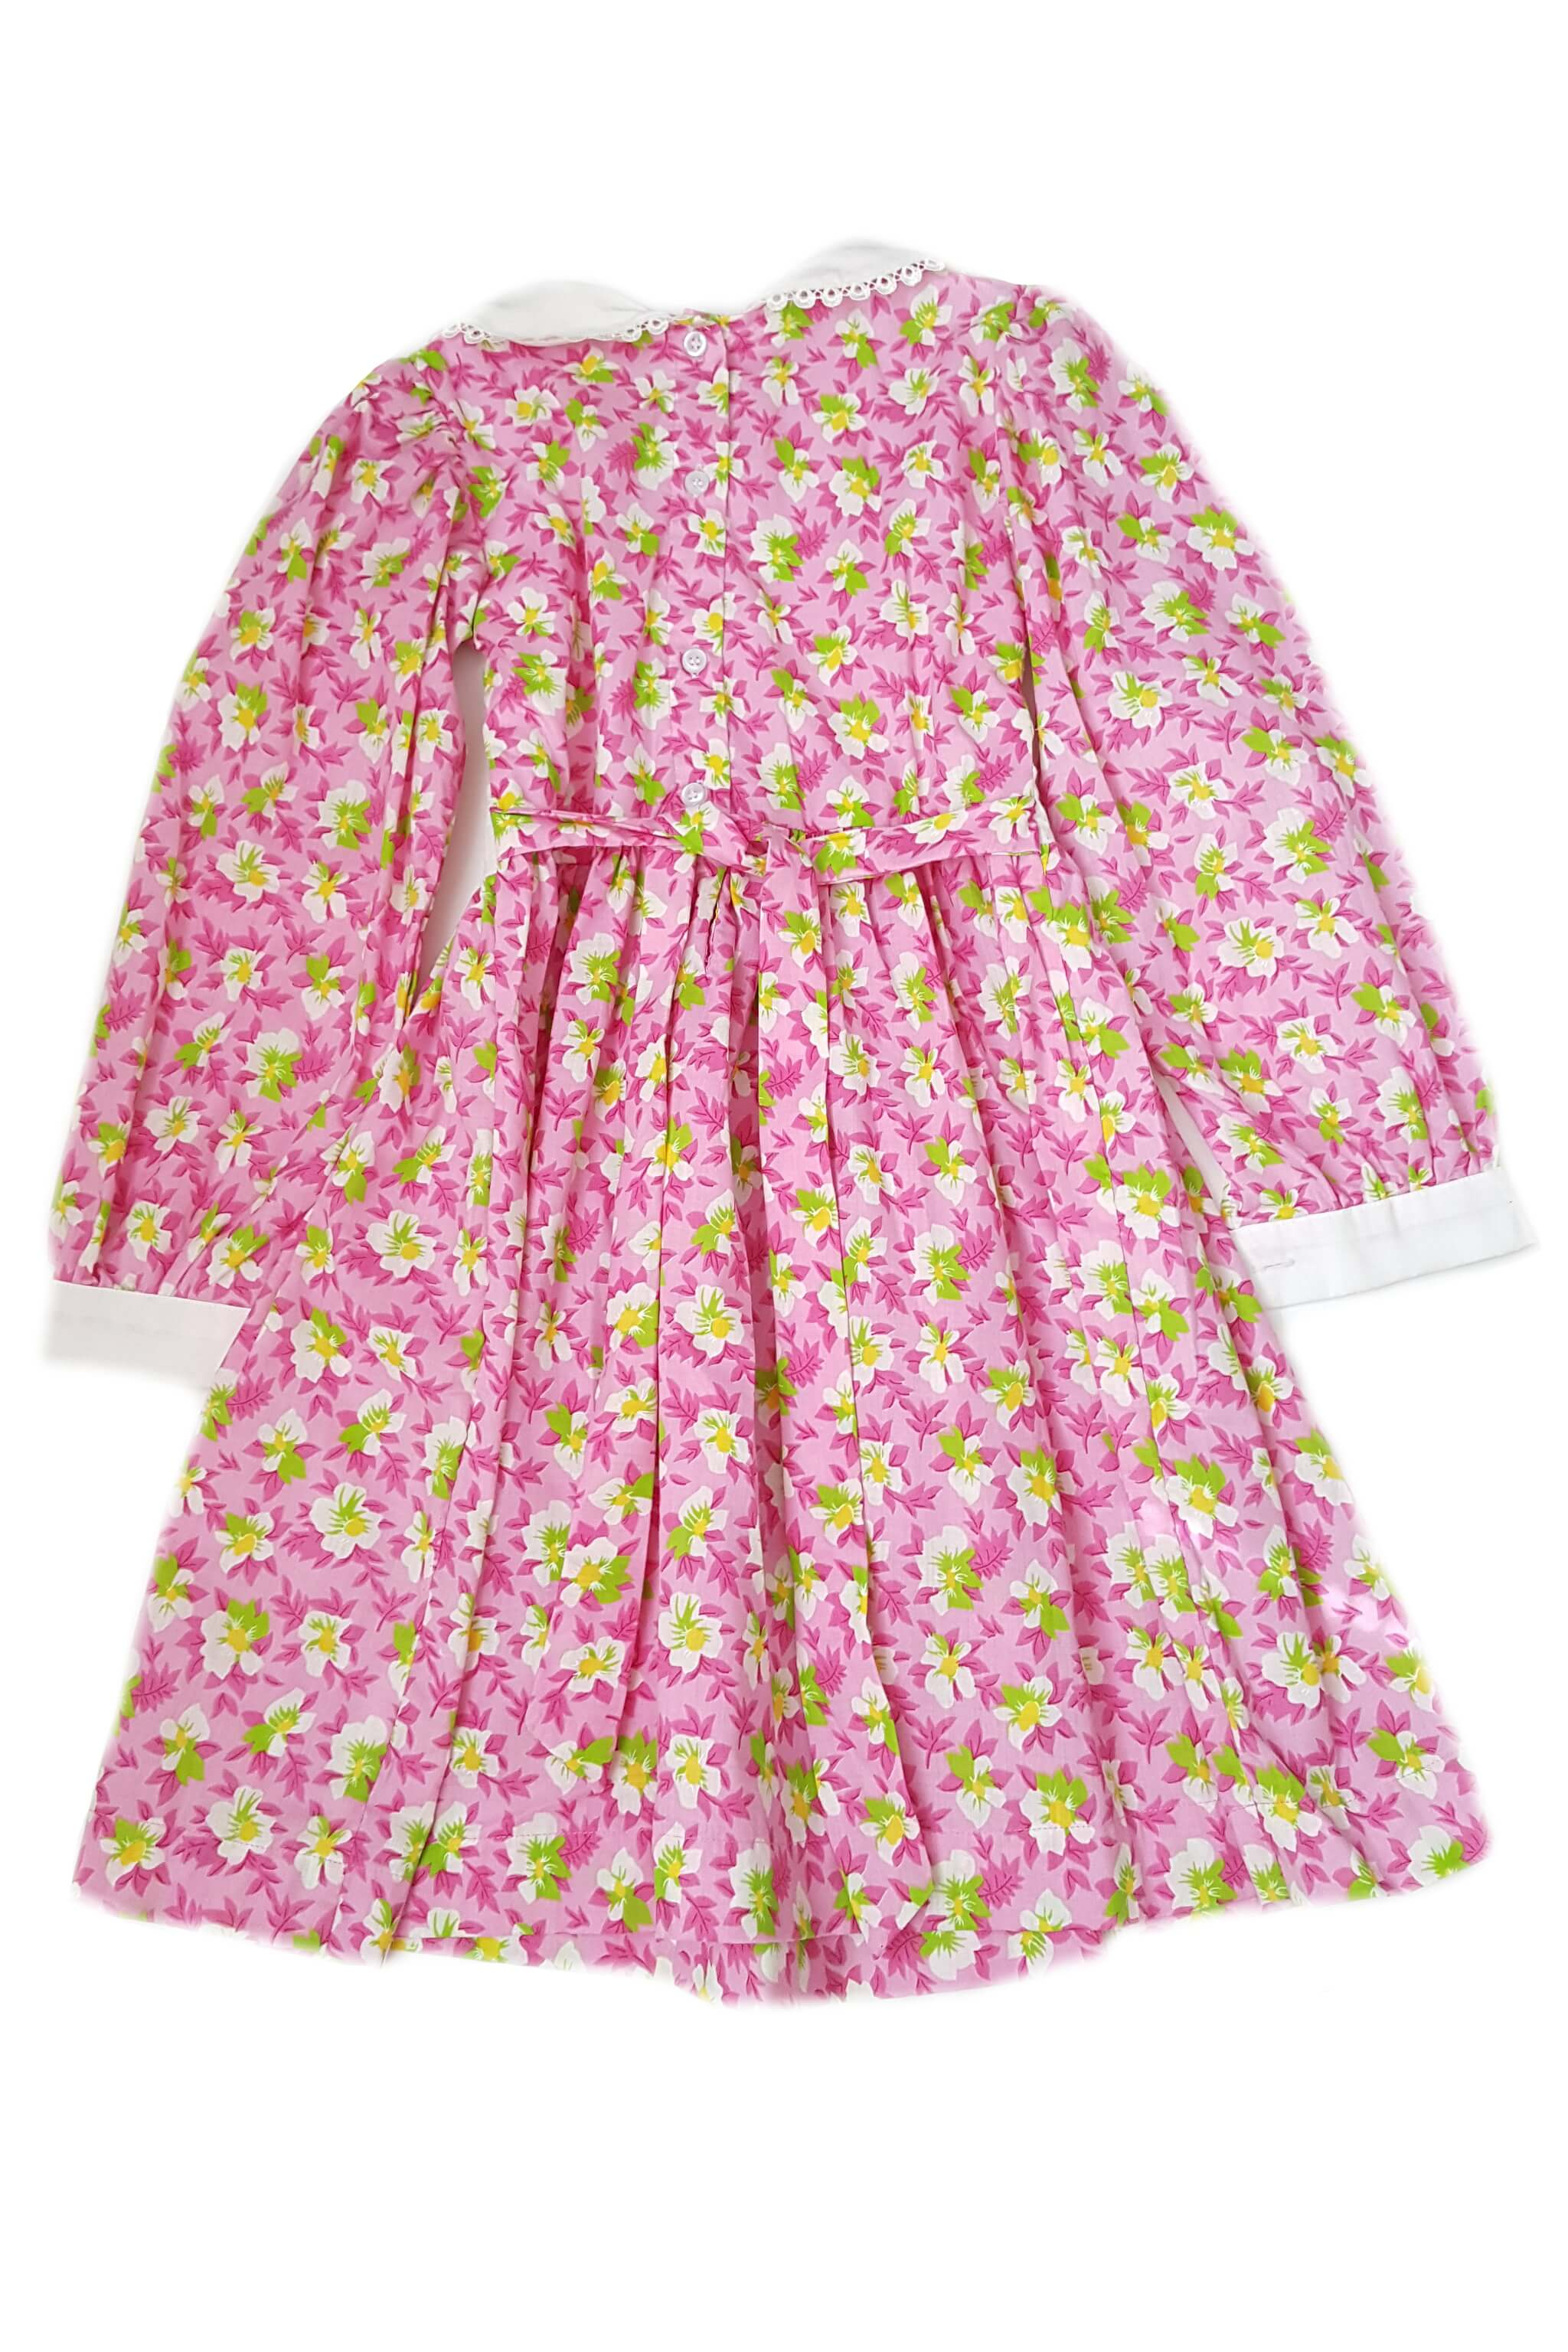 Back of bold pink floral print long sleeve dress with contrasting white peter pan collar, cuffs and white bodice featuring hand-smocked baskets of flowers with button back opening and sash for girls